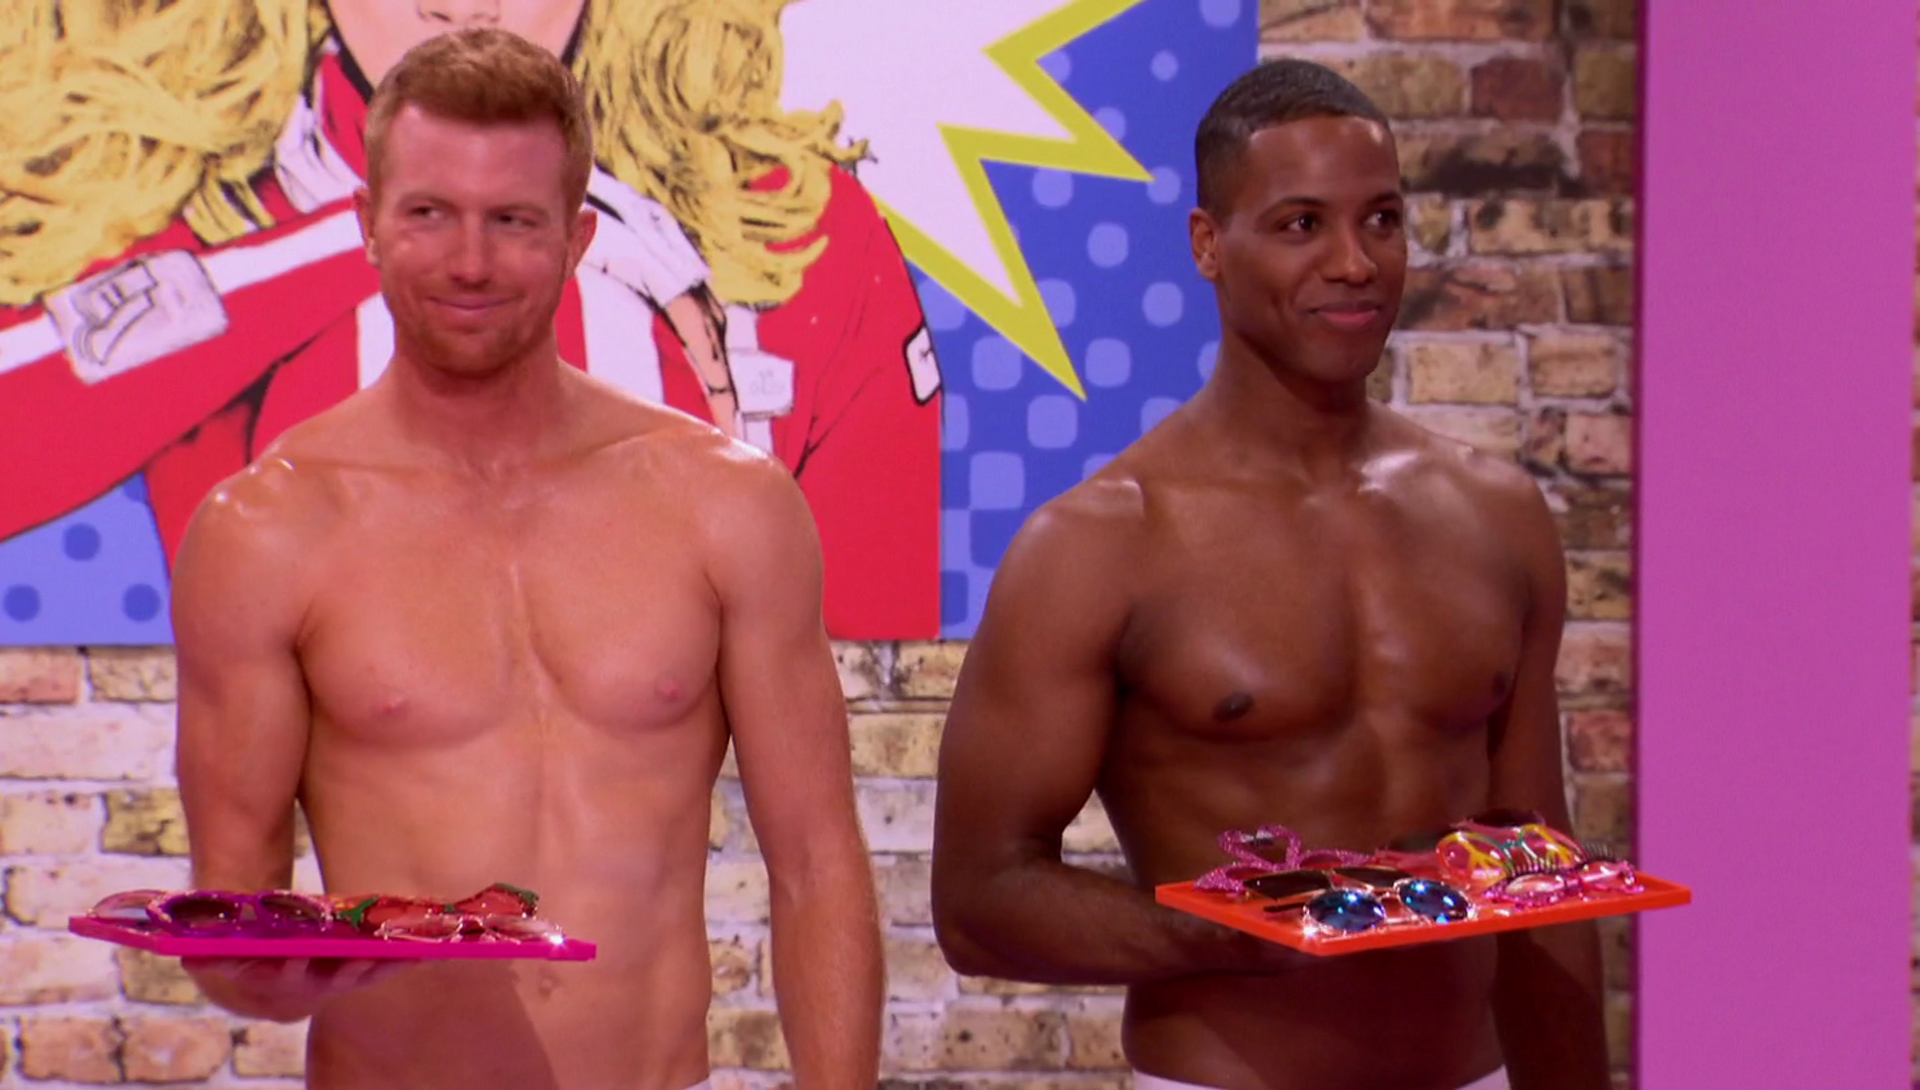 """RuPaul's Drag Race All Stars Season 3 Pit Crew shirtless in 3×01 """"All Star Variety Show"""""""